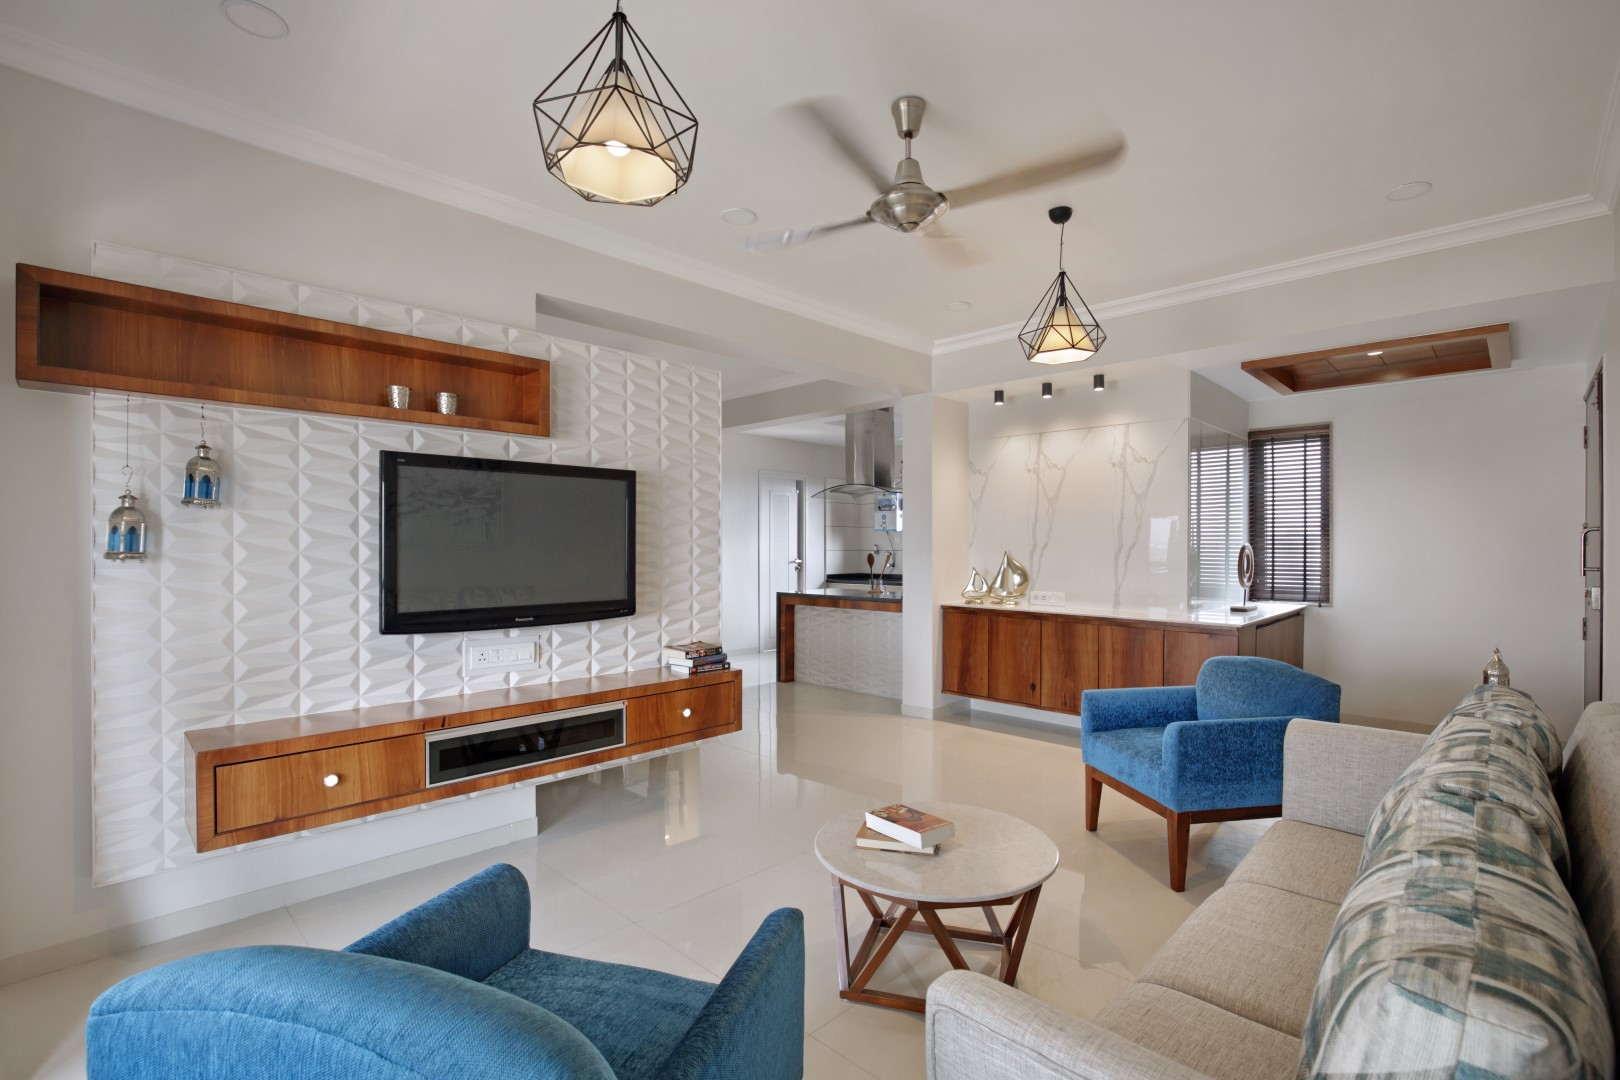 2 bhk interior design studio 7 designs the architects for Interior decorating firms